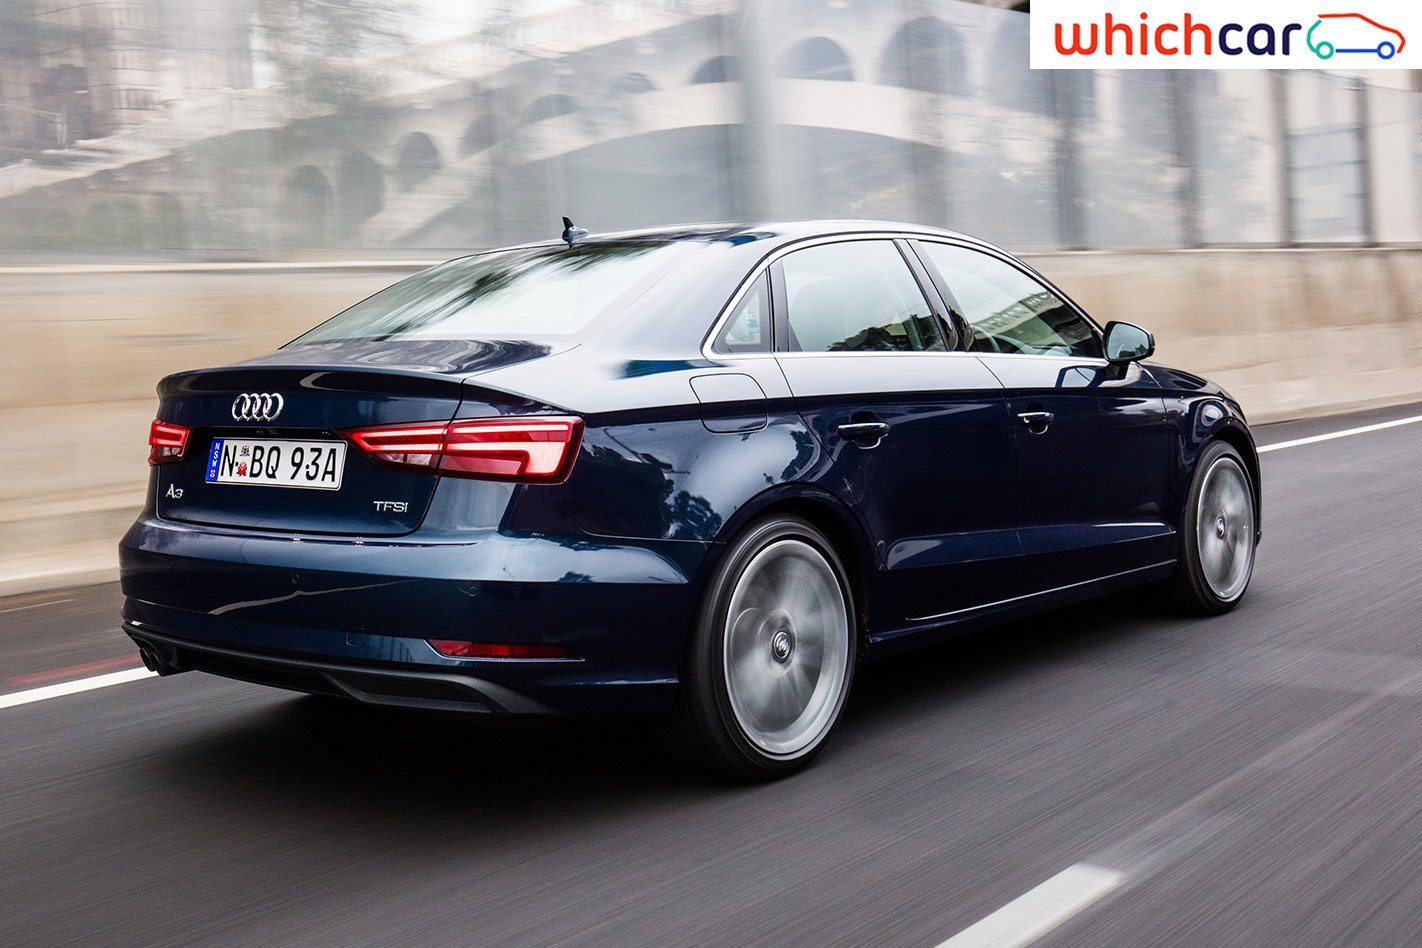 Audi A3 Review, Price & Features